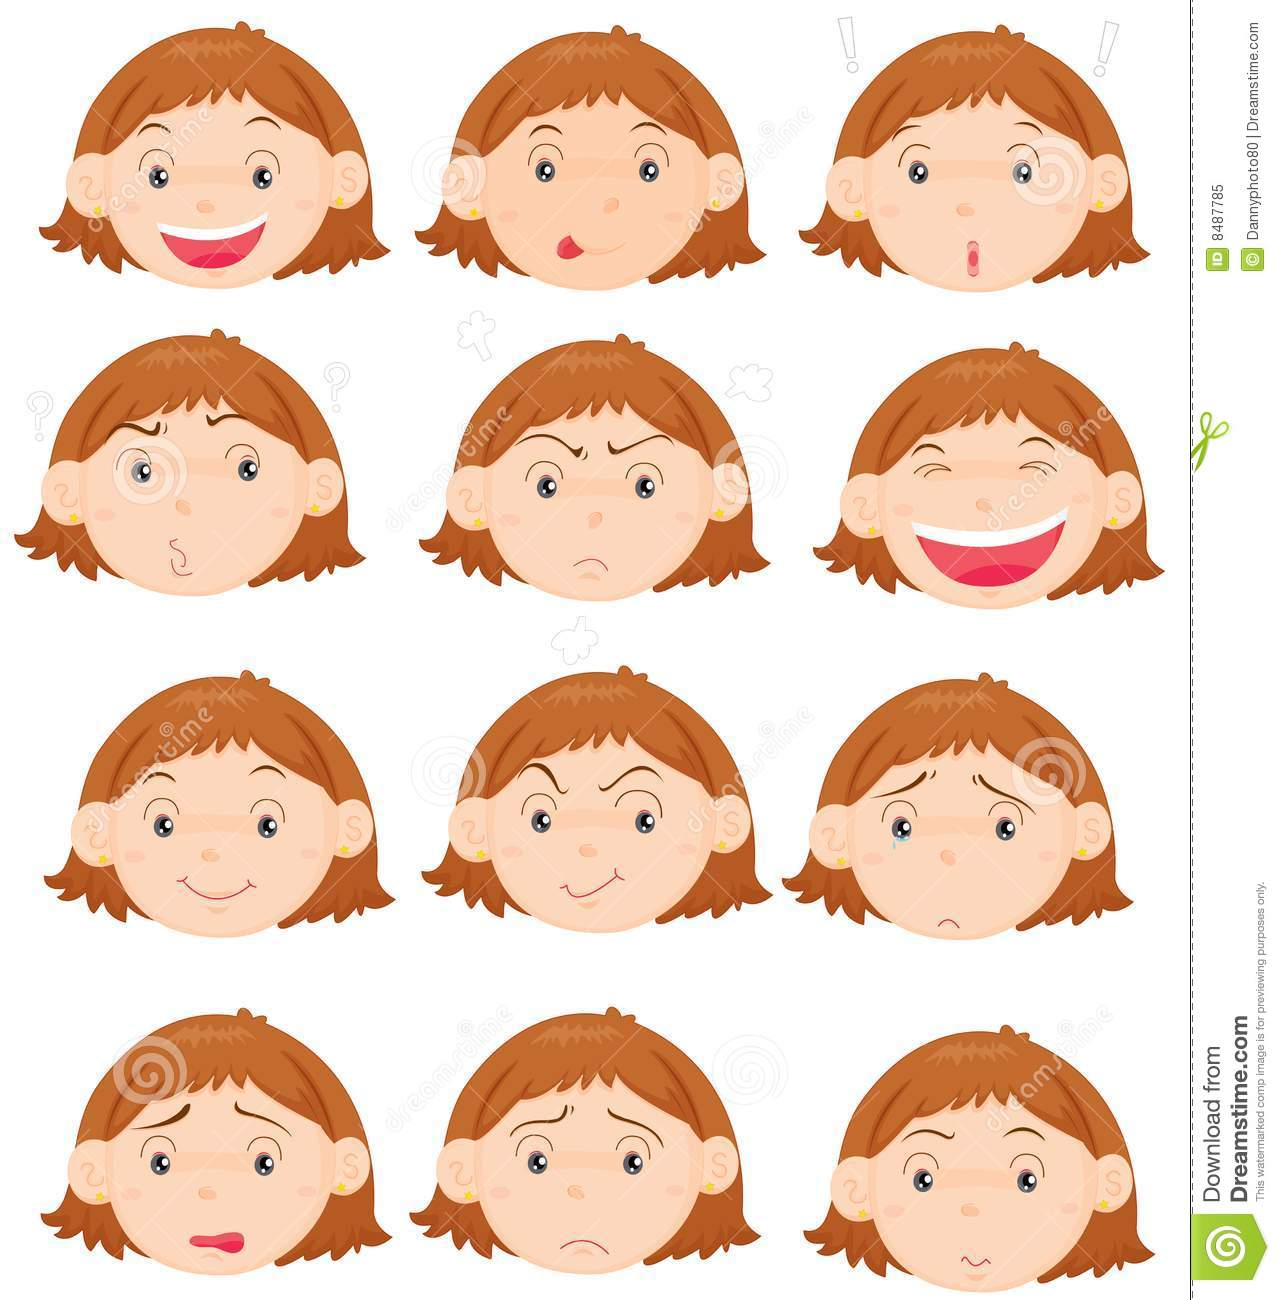 Facial Expressions Royalty Free Stock Photo   Image  8487785